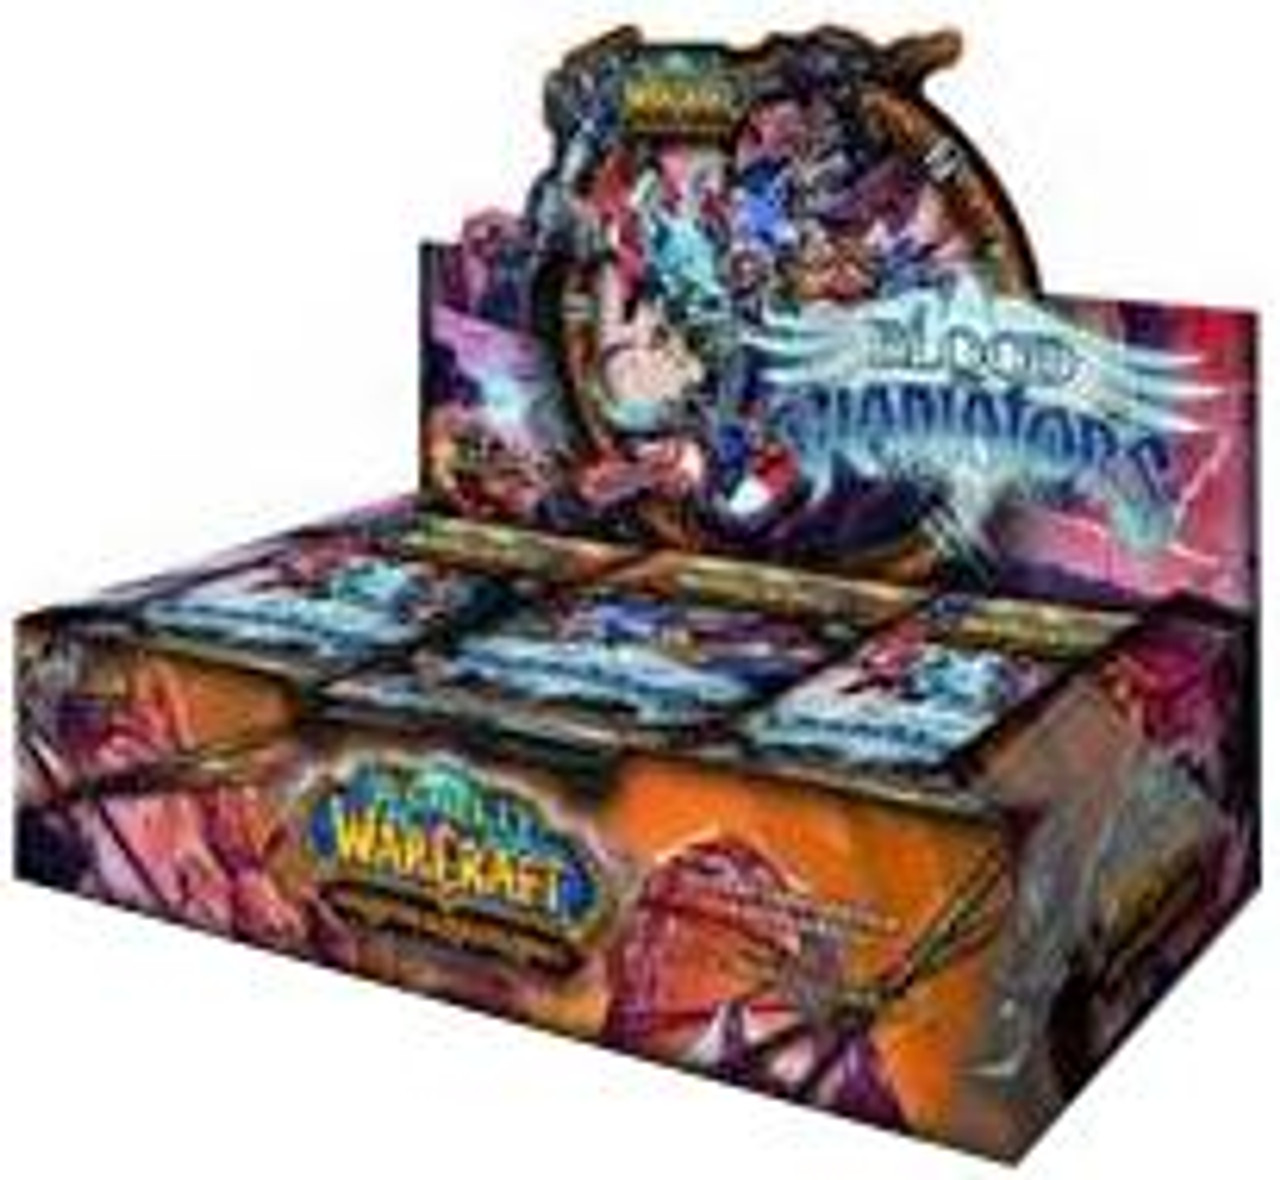 World of Warcraft Trading Card Game Blood of Gladiators Booster Box [24 Packs]